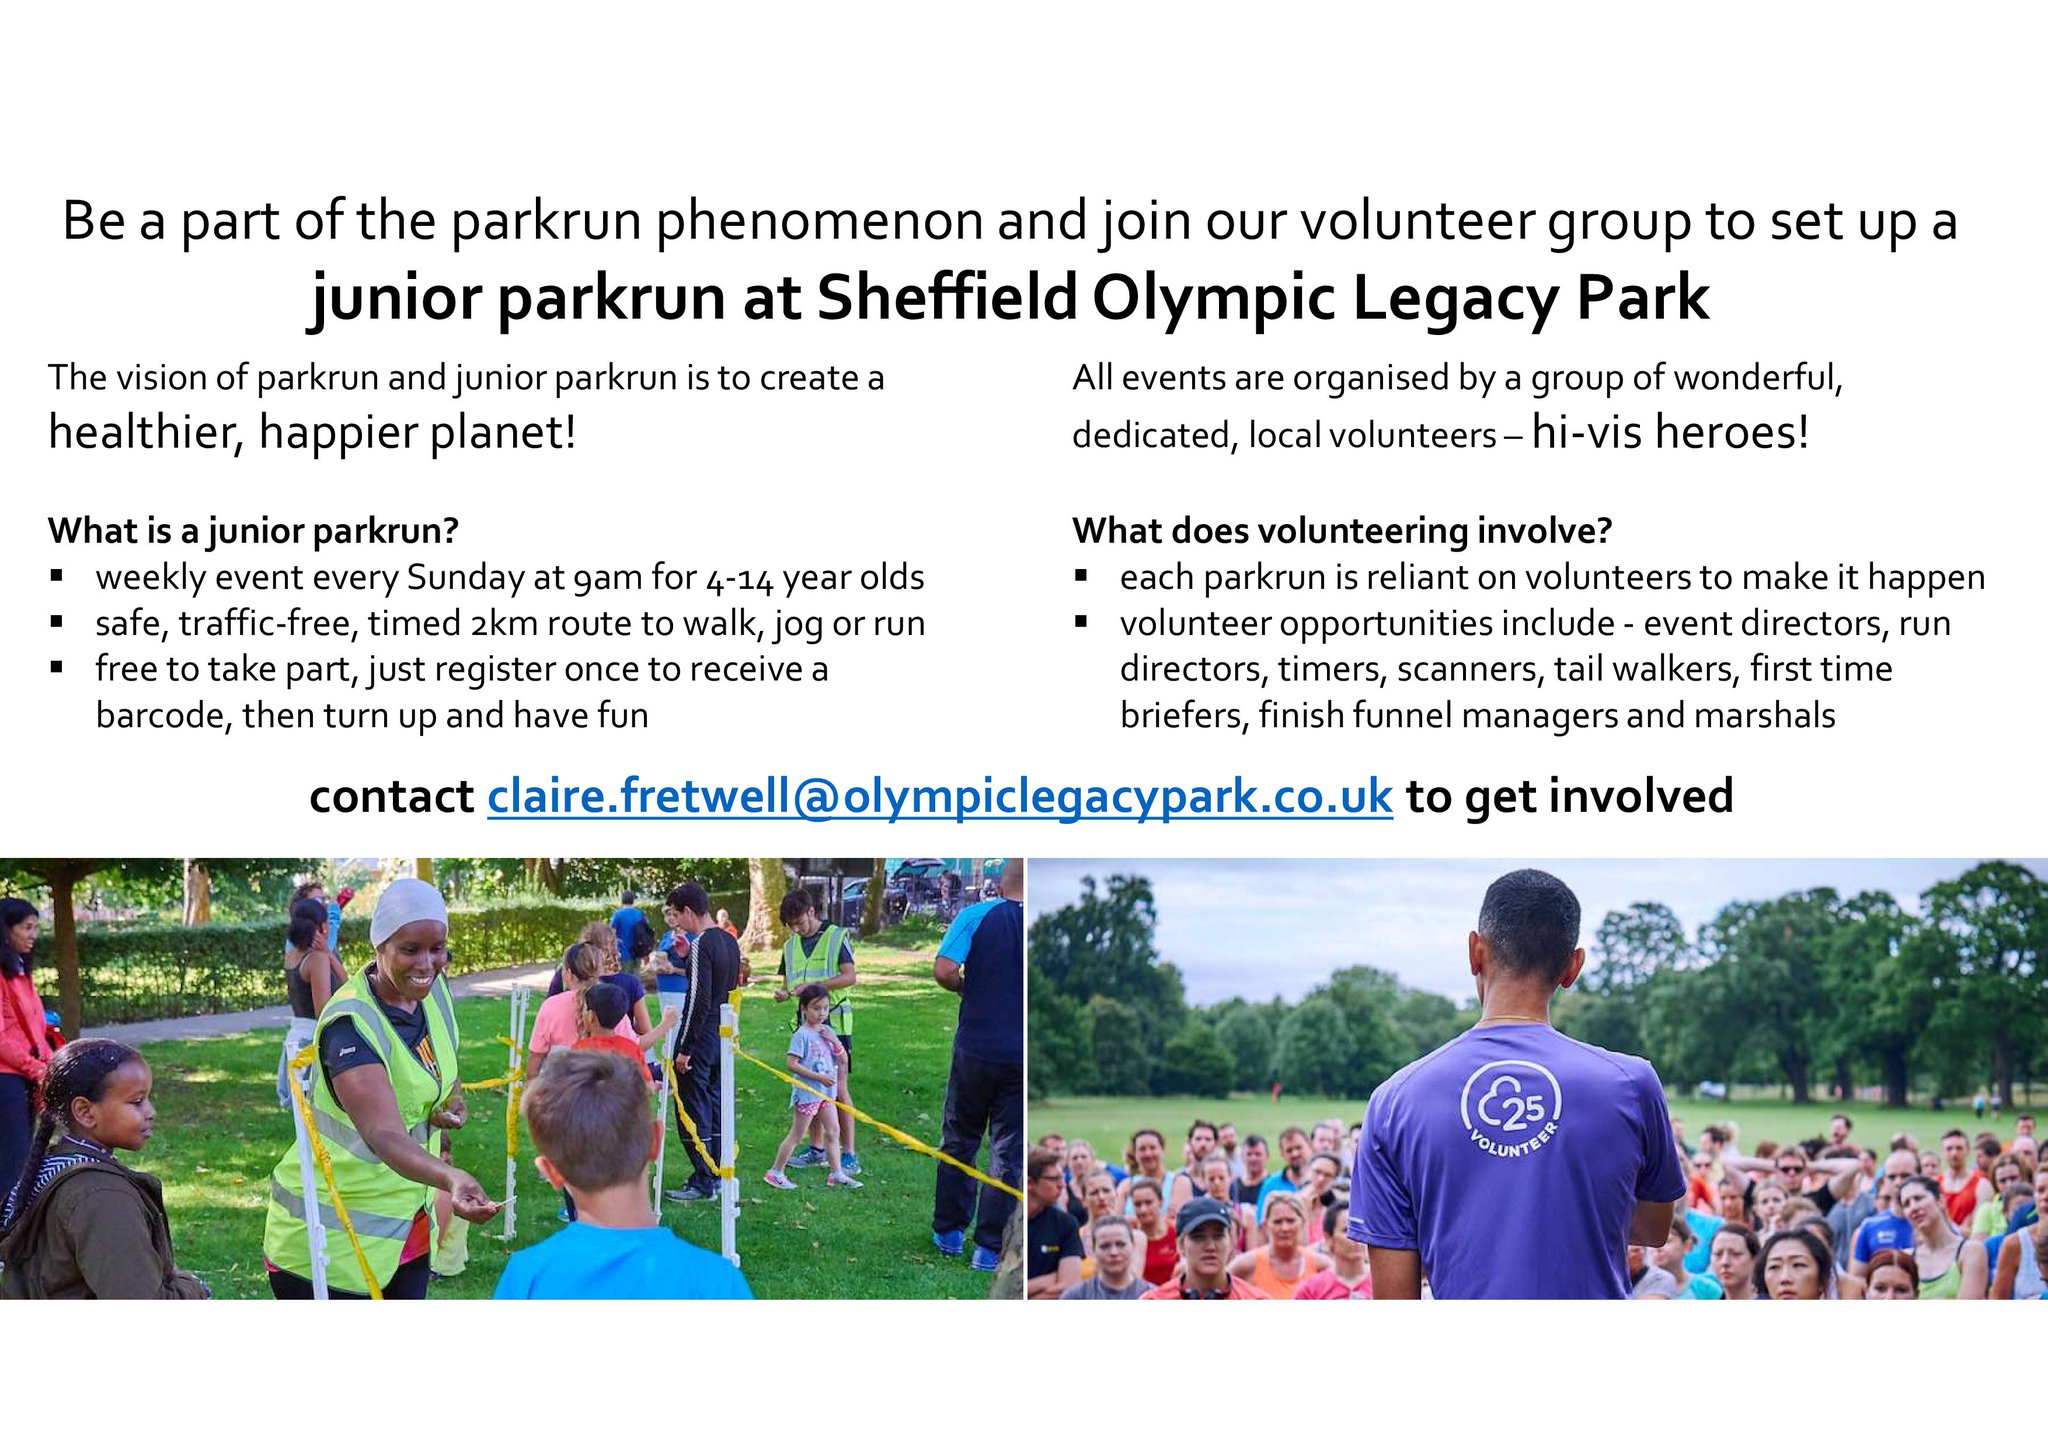 Sheffield Olympic Legacy Park On Twitter It Was Great To Meet Some Of Our Juniorparkrun Volunteers This Week Plans For The Launch On Sun 17 Nov Are Well Underway We D Still